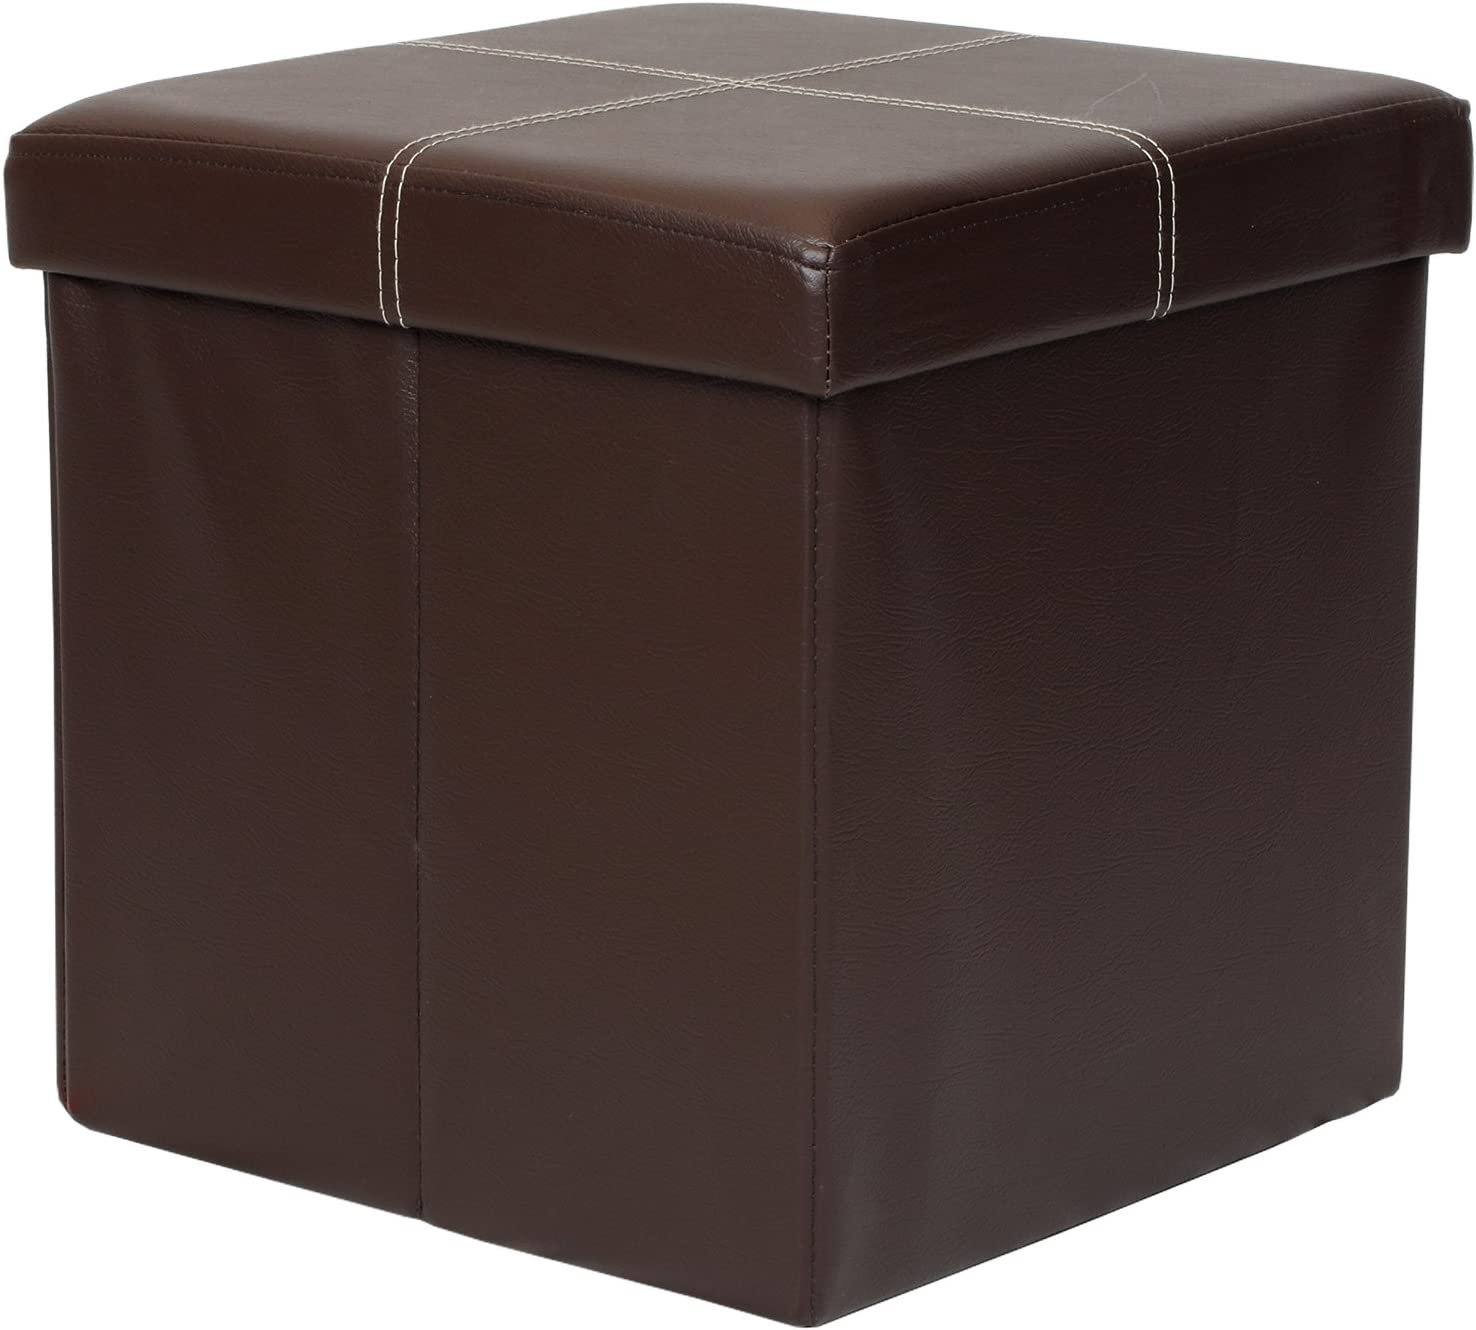 Otto & BenFolding Toy Box Chest with Memory Foam Seat, Faux Leather Small Ottomans Bench Foot Rest Stool, Line Brown